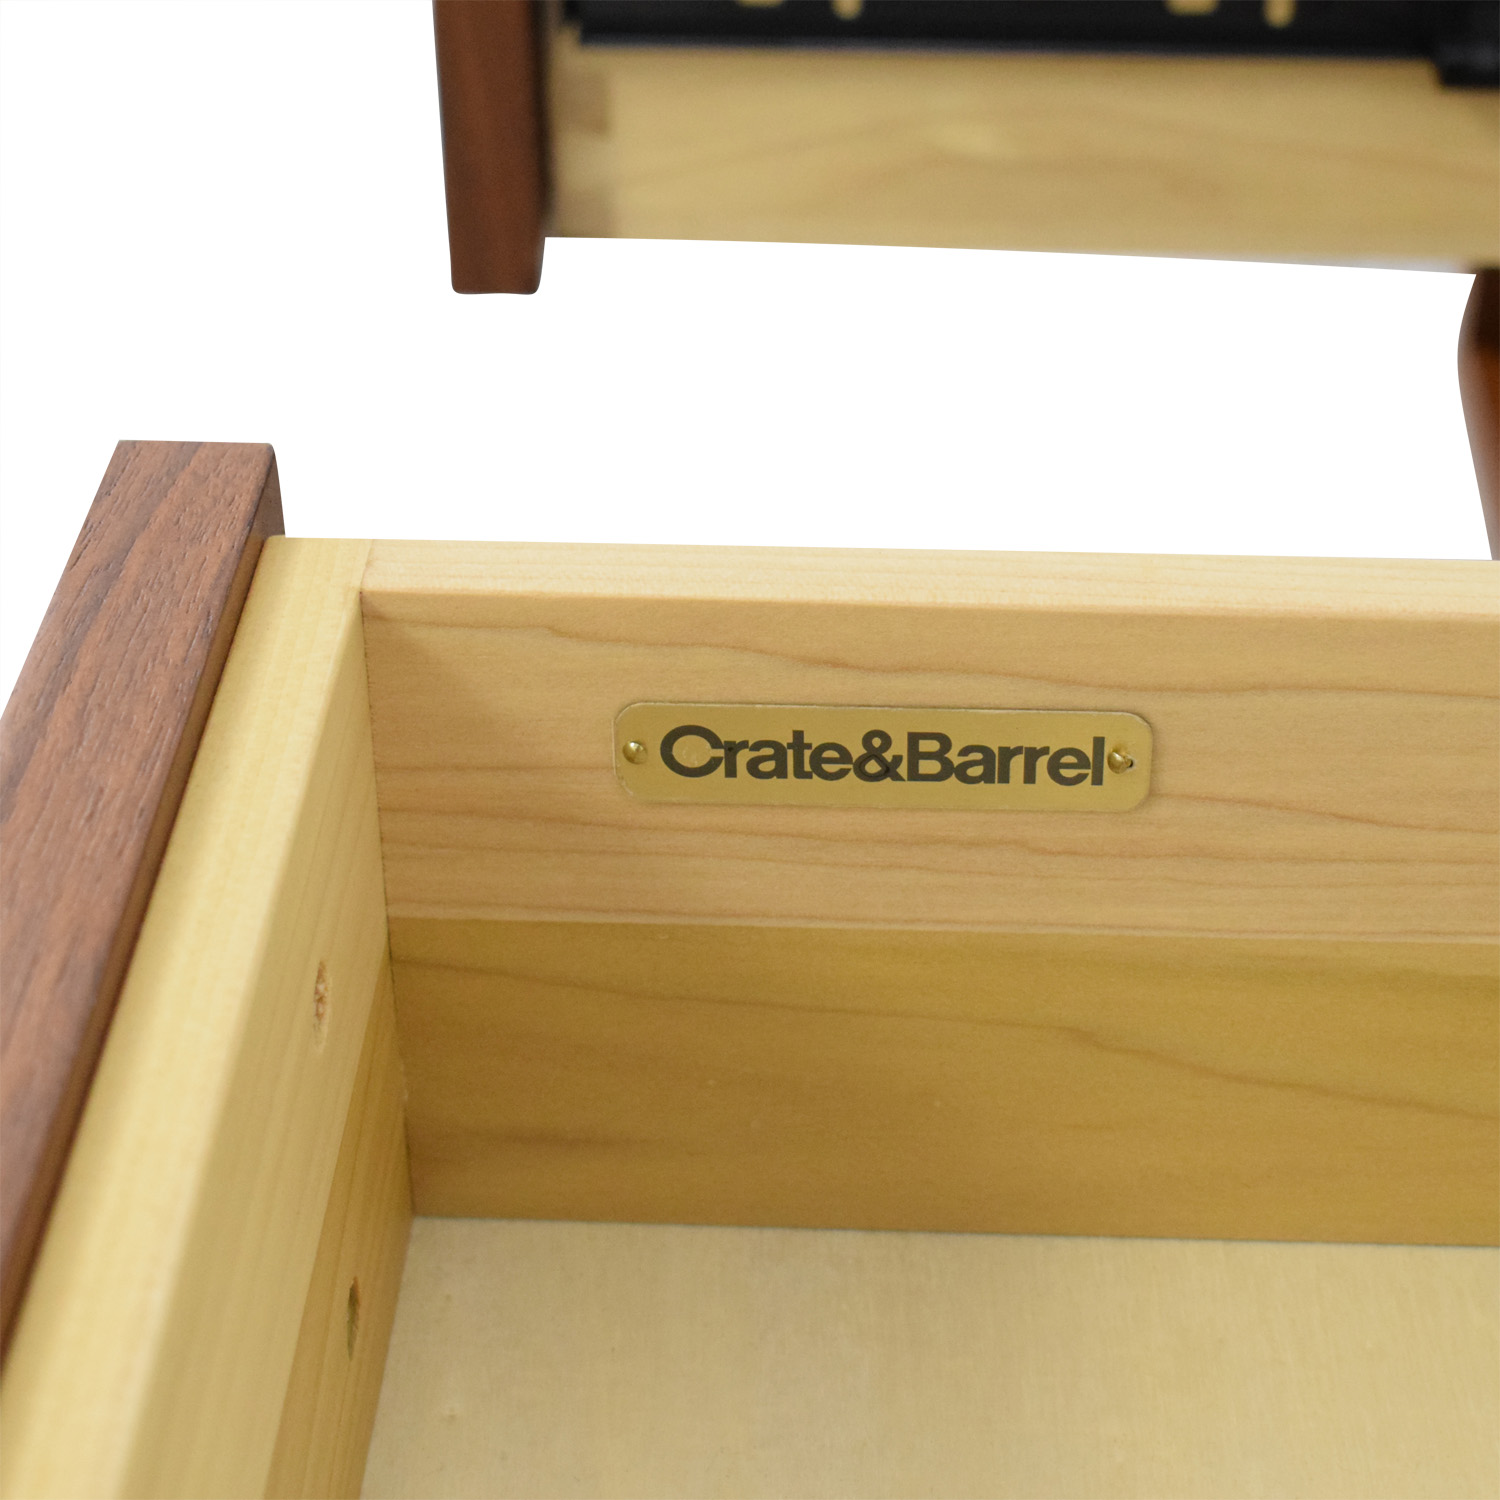 buy Crate & Barrel Tate Nightstands Crate & Barrel End Tables